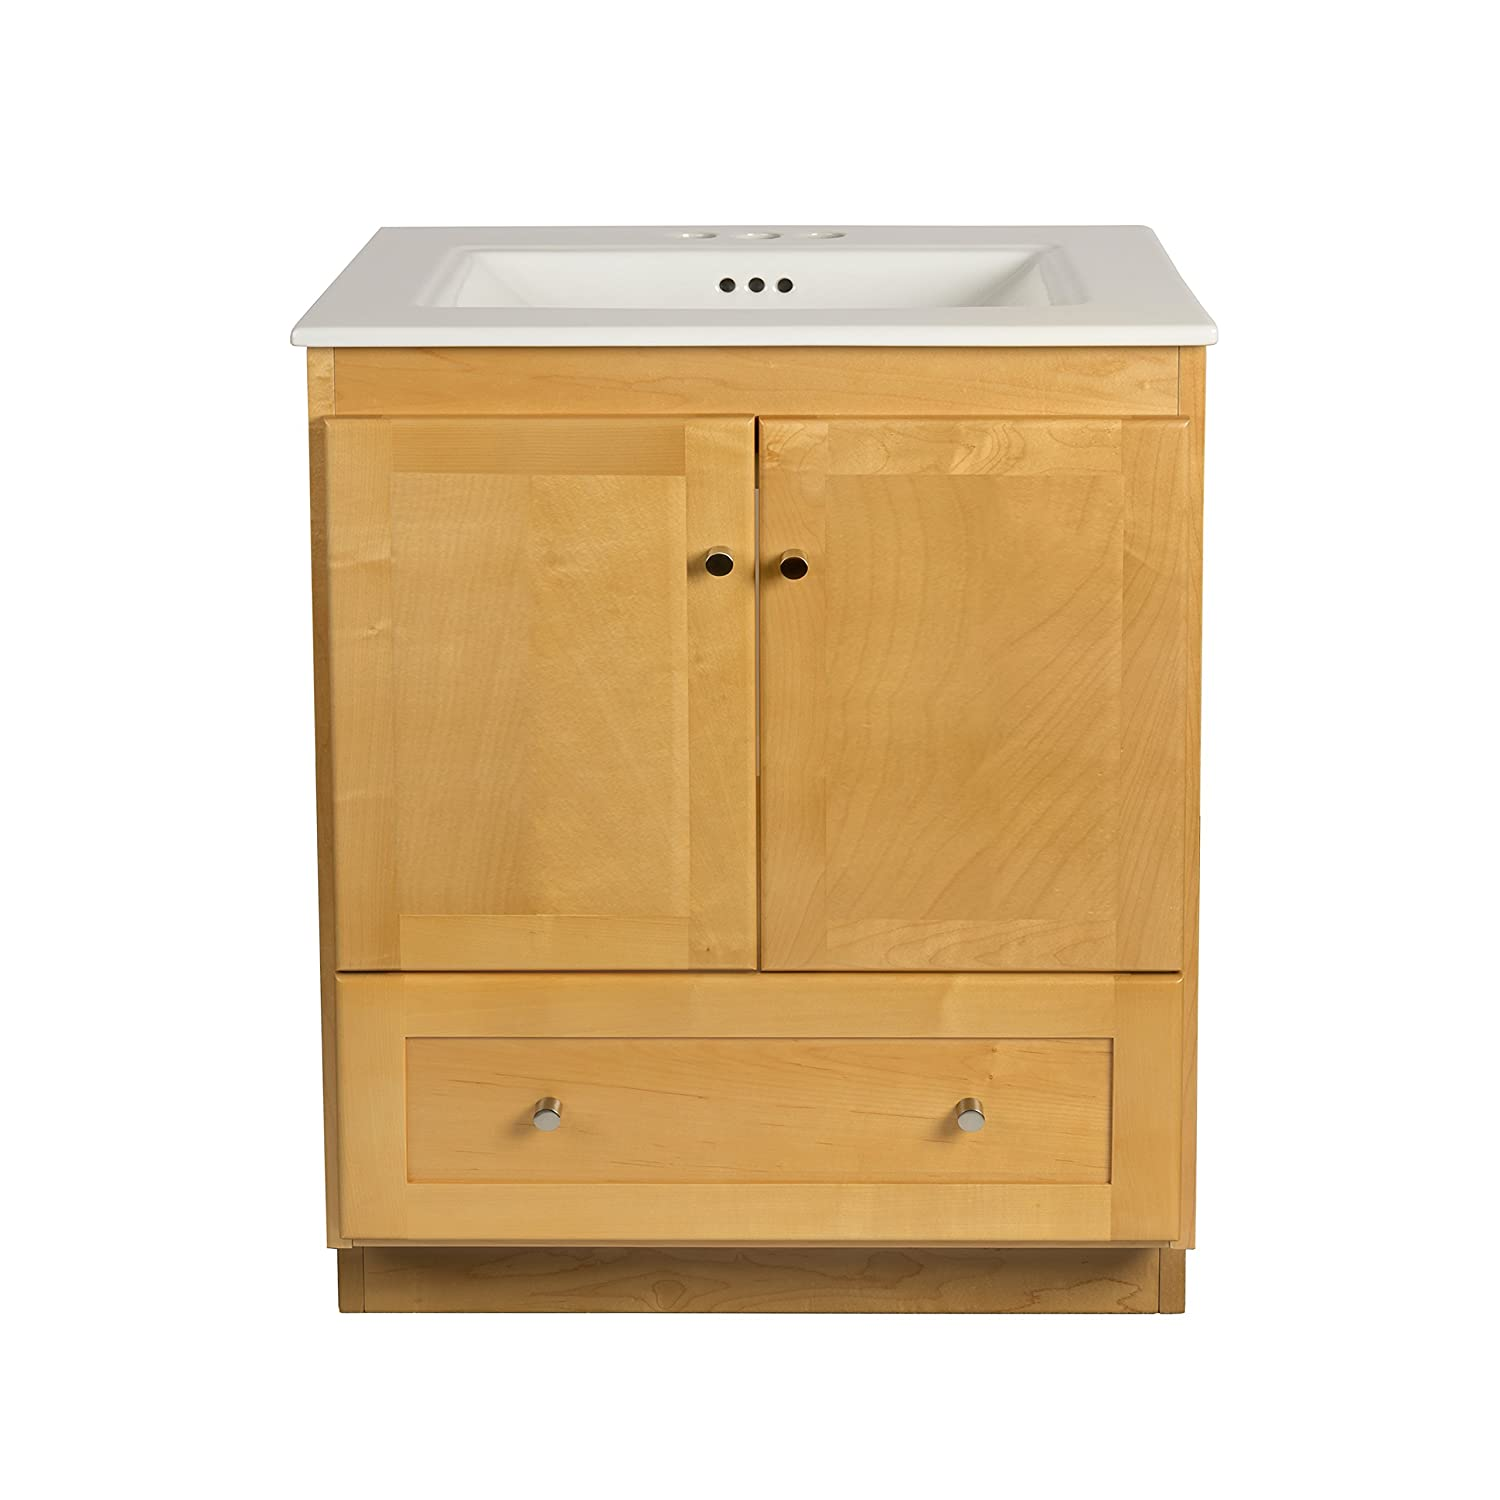 RONBOW Shaker 30 Inch Bathroom Vanity Set In Maple, Wood Cabinet With Two  Wood Doors And Bottom Drawer, Ceramic Sinktop In White     Amazon.com